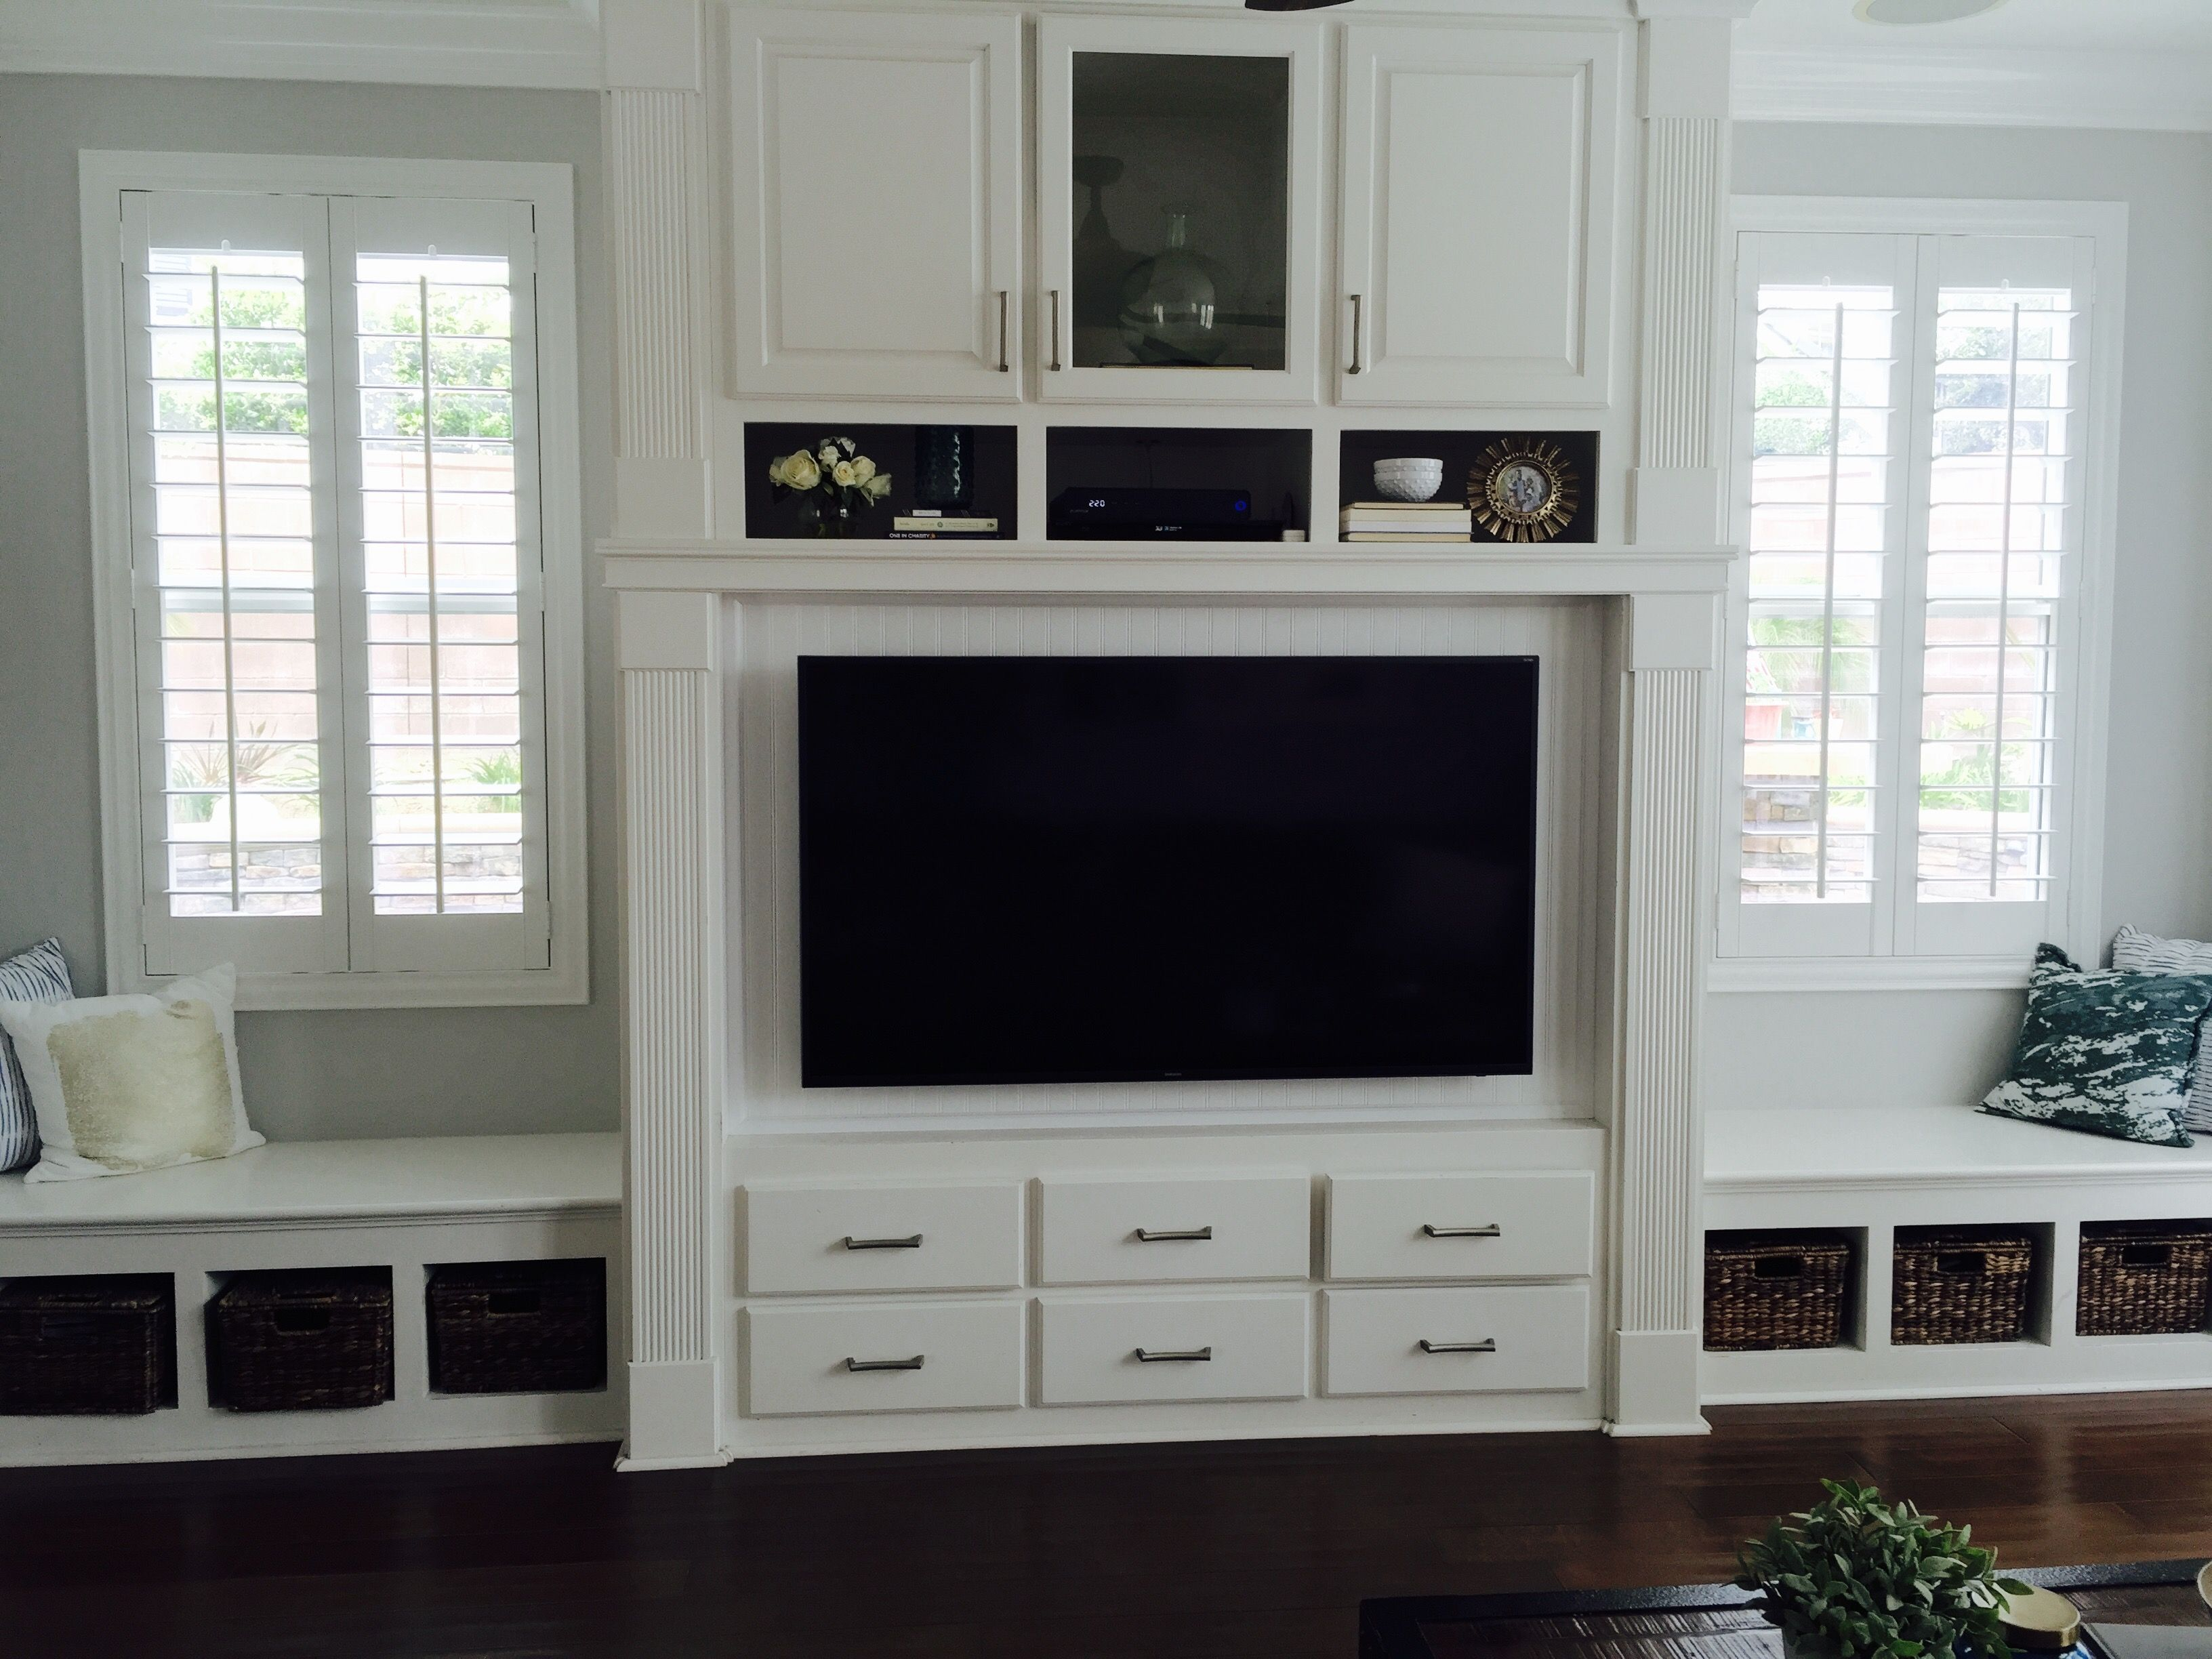 Sensational Tv Built In With Bench Seating Remodel Ideas Living Squirreltailoven Fun Painted Chair Ideas Images Squirreltailovenorg